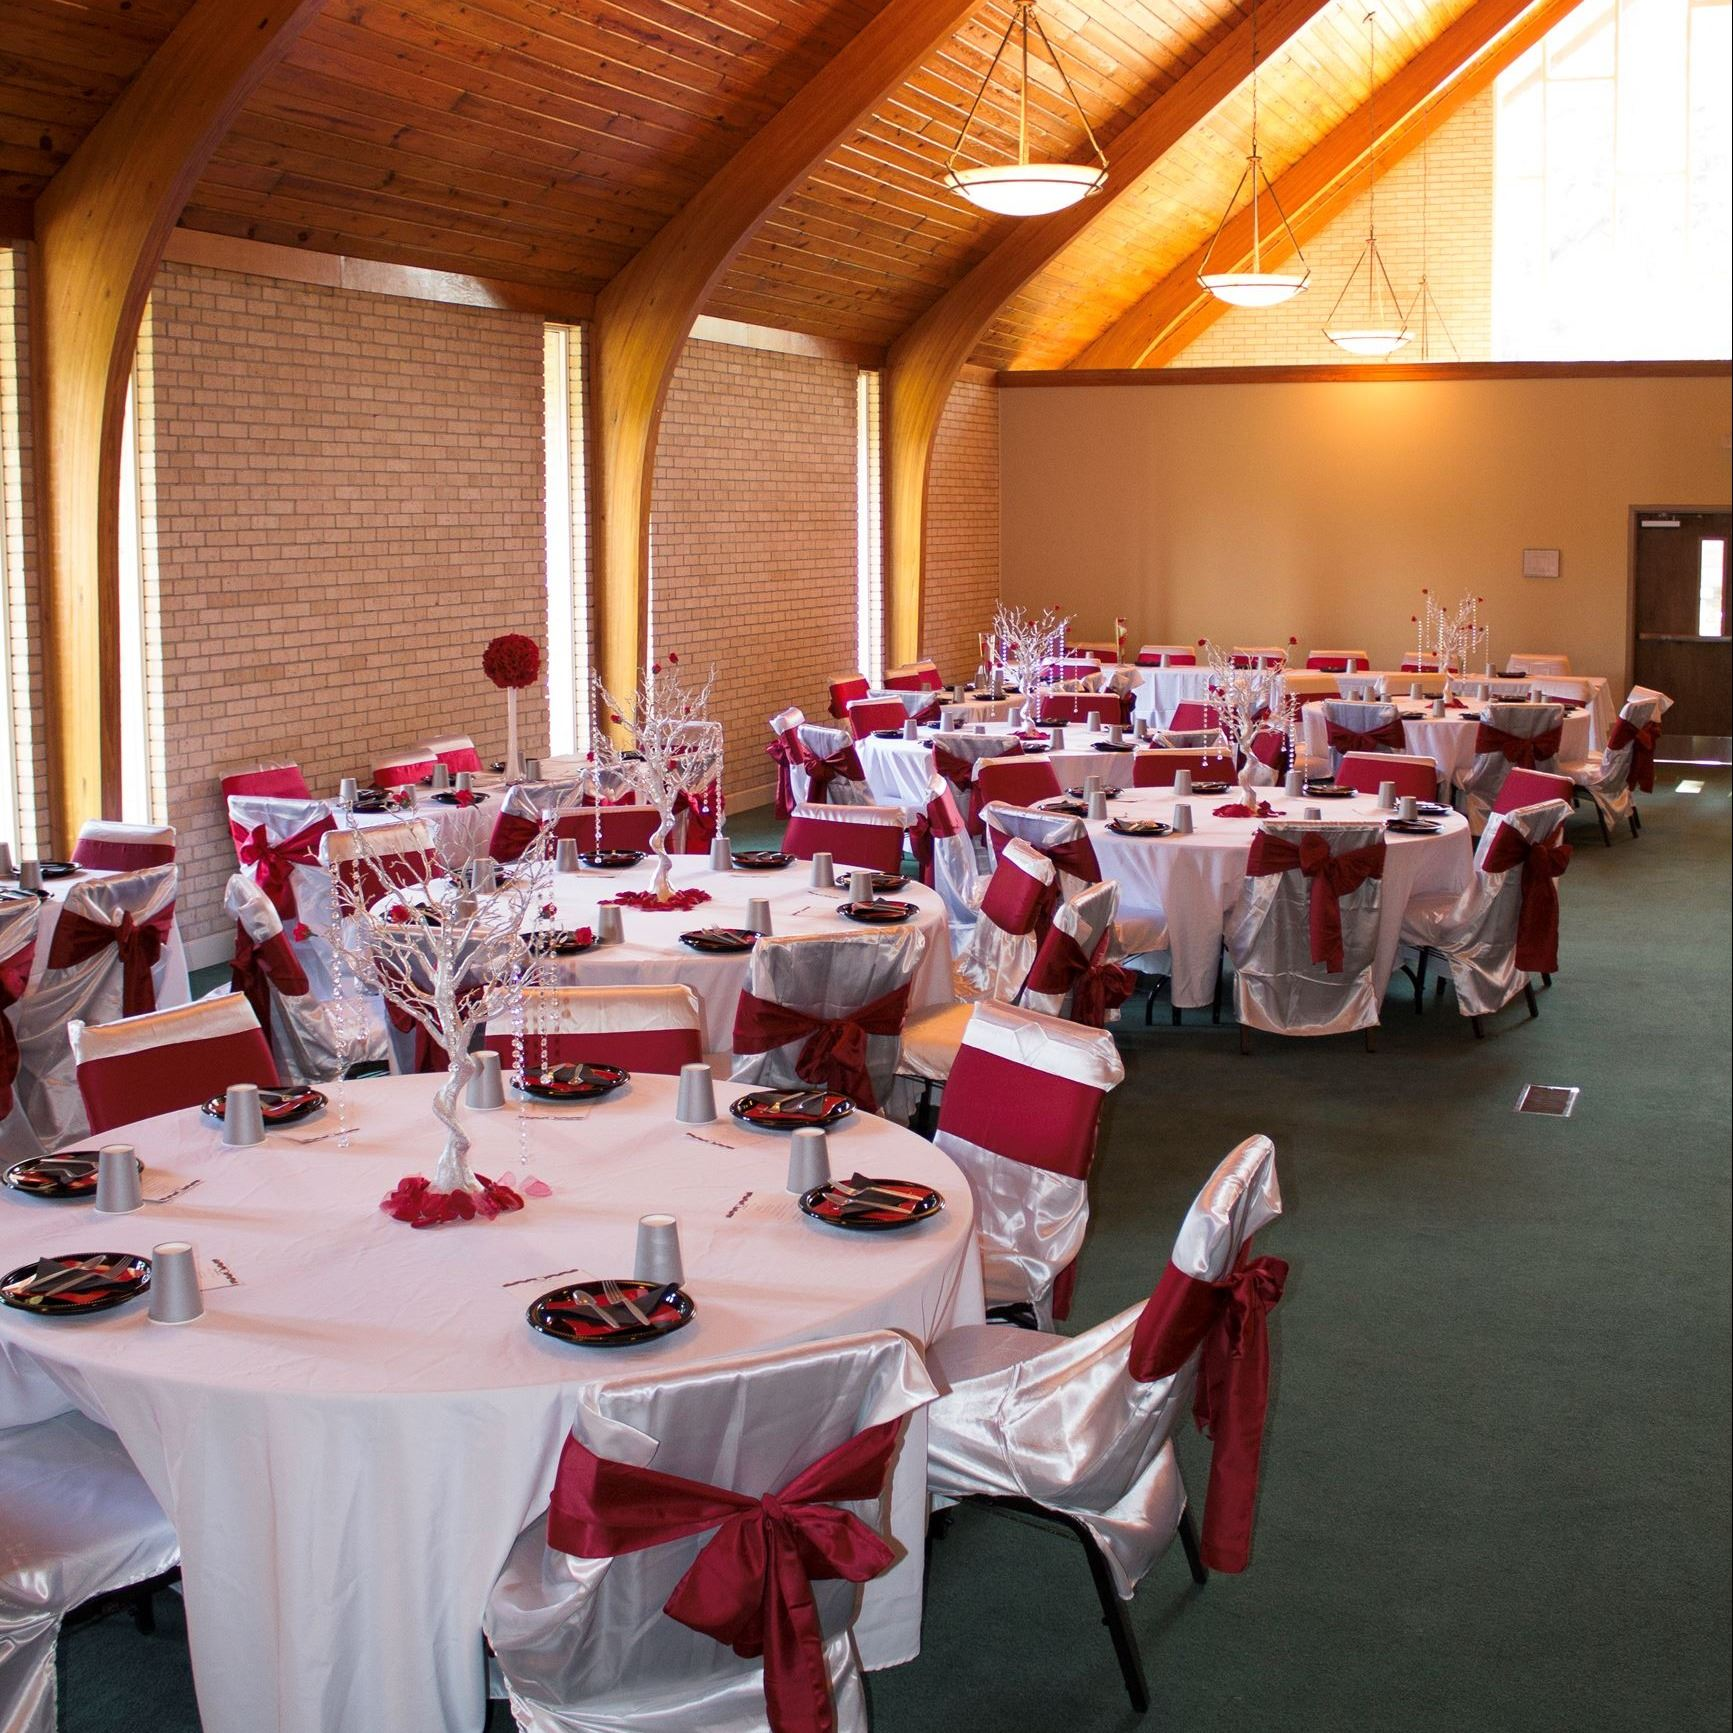 An image of a church sanctuary decorated for a wedding reception.